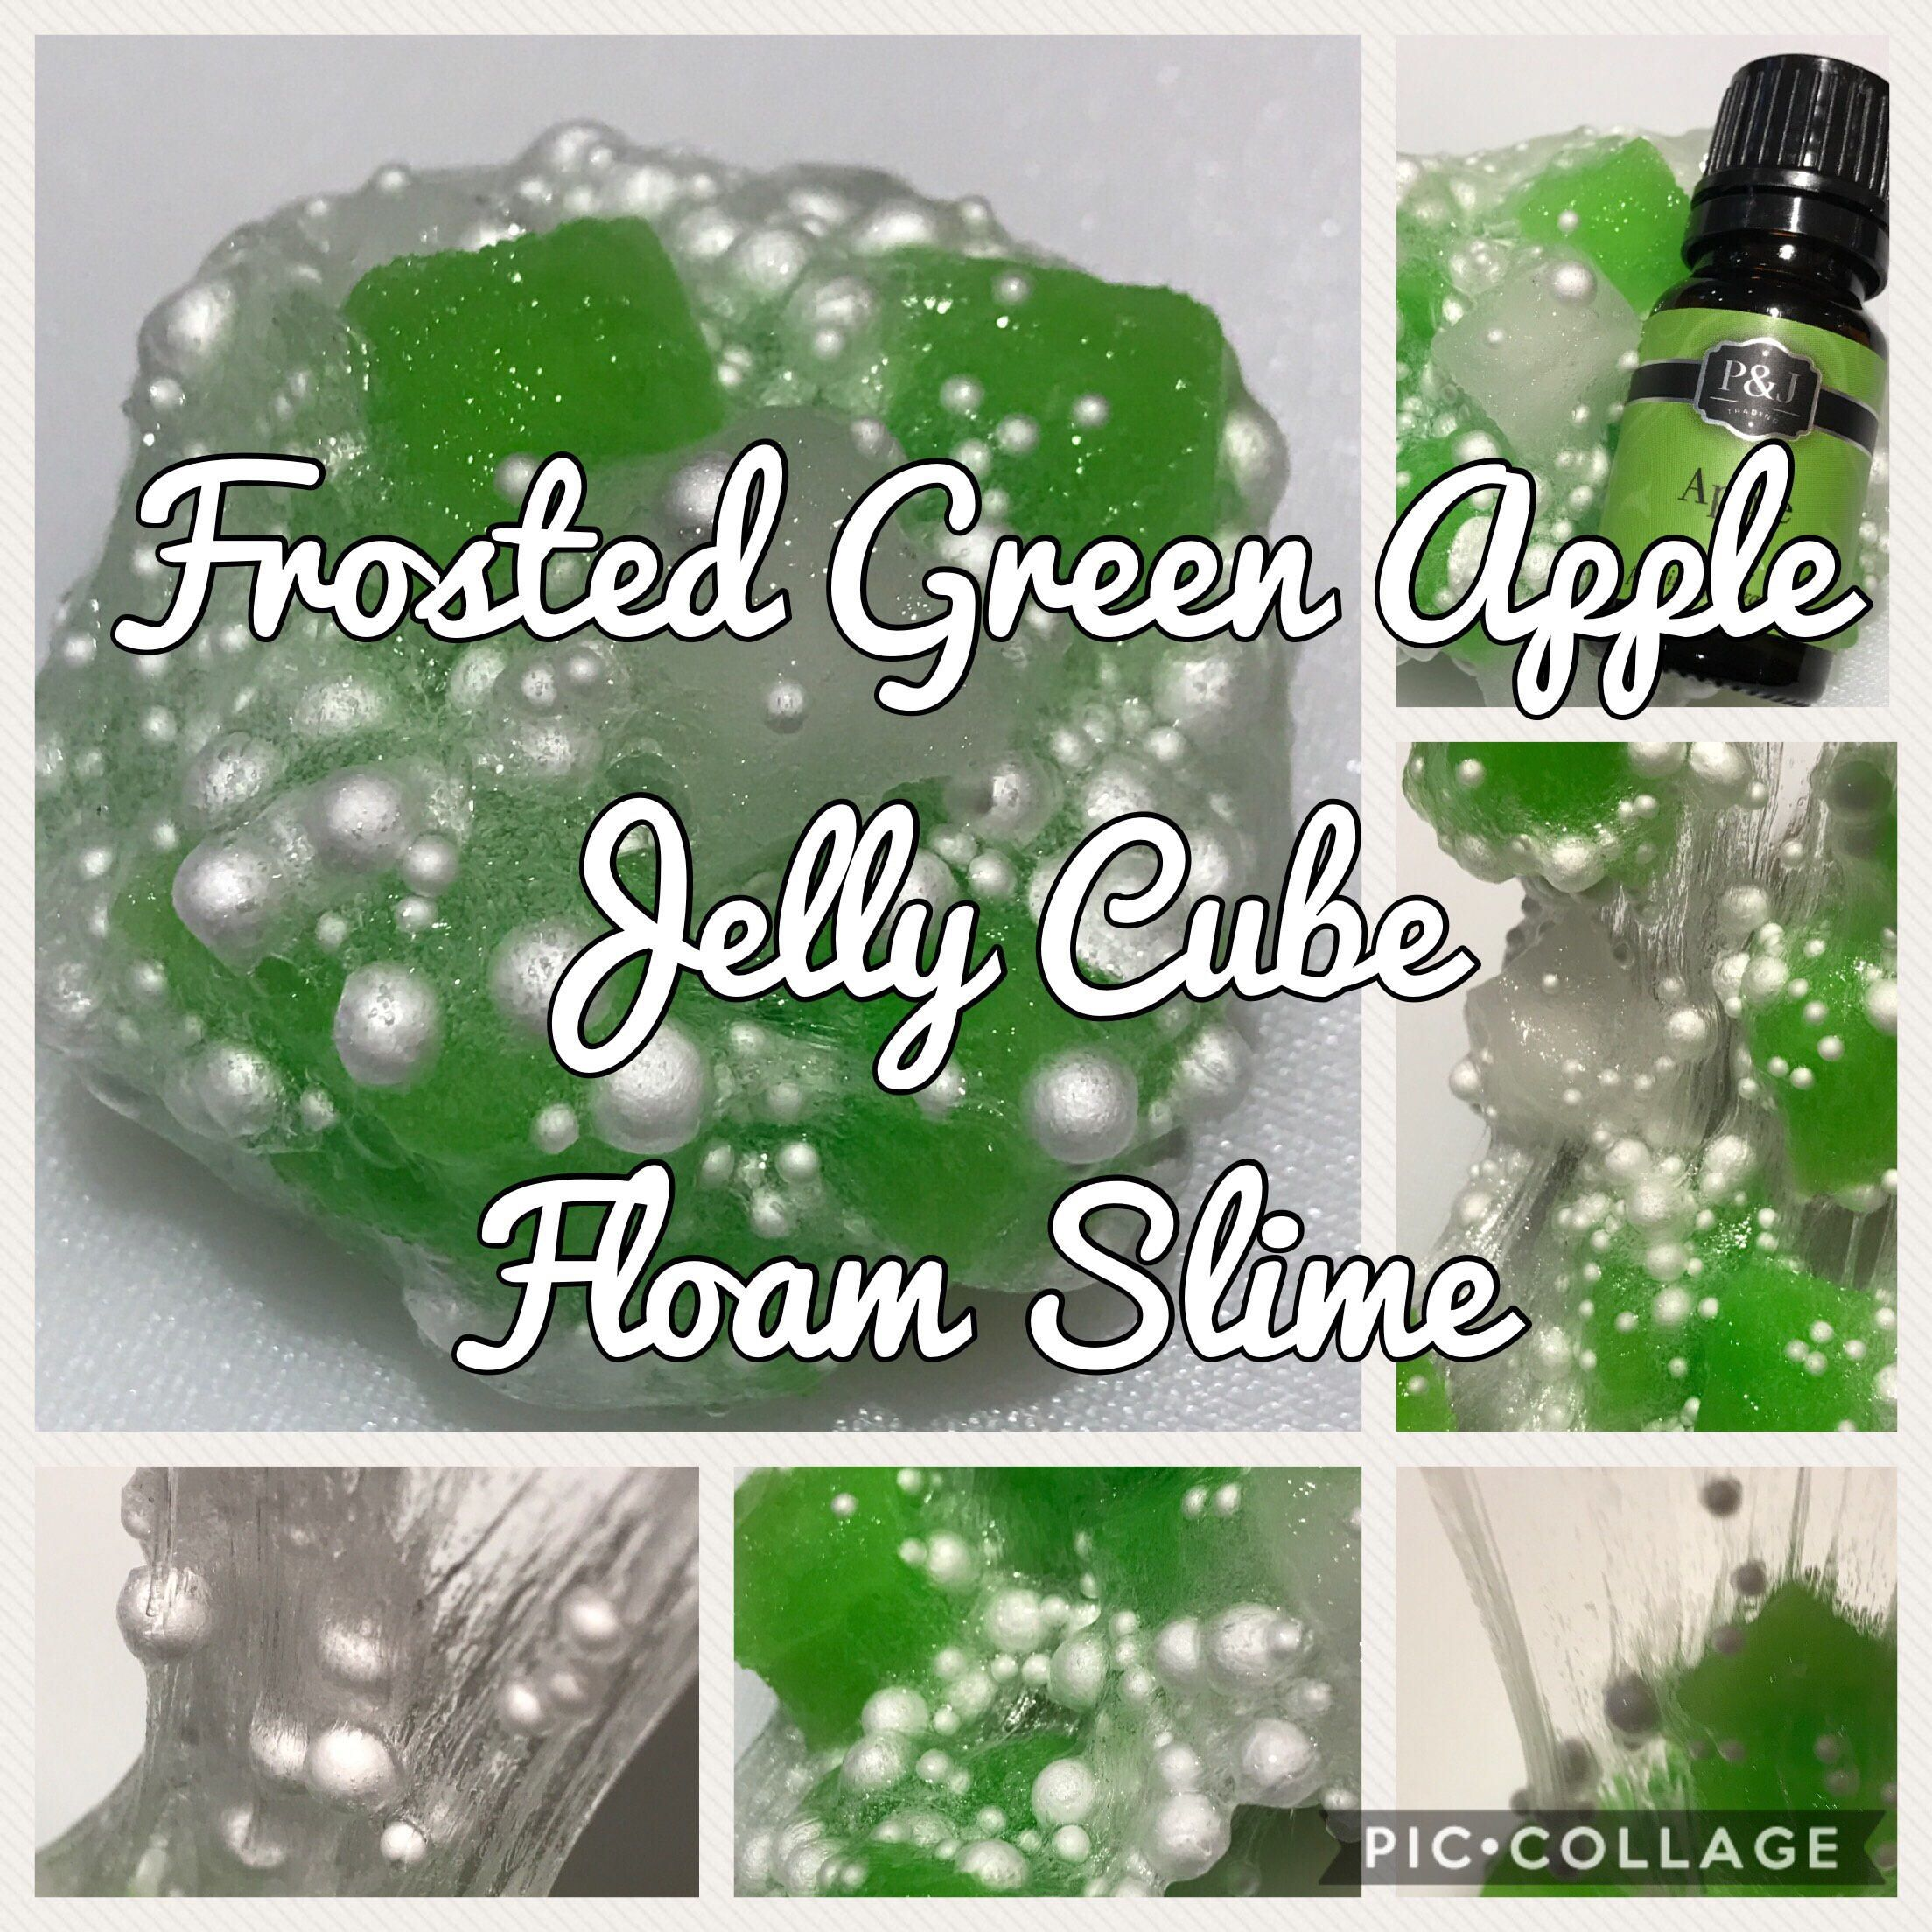 Frosted Green Apple Jelly Cube Floam Slime